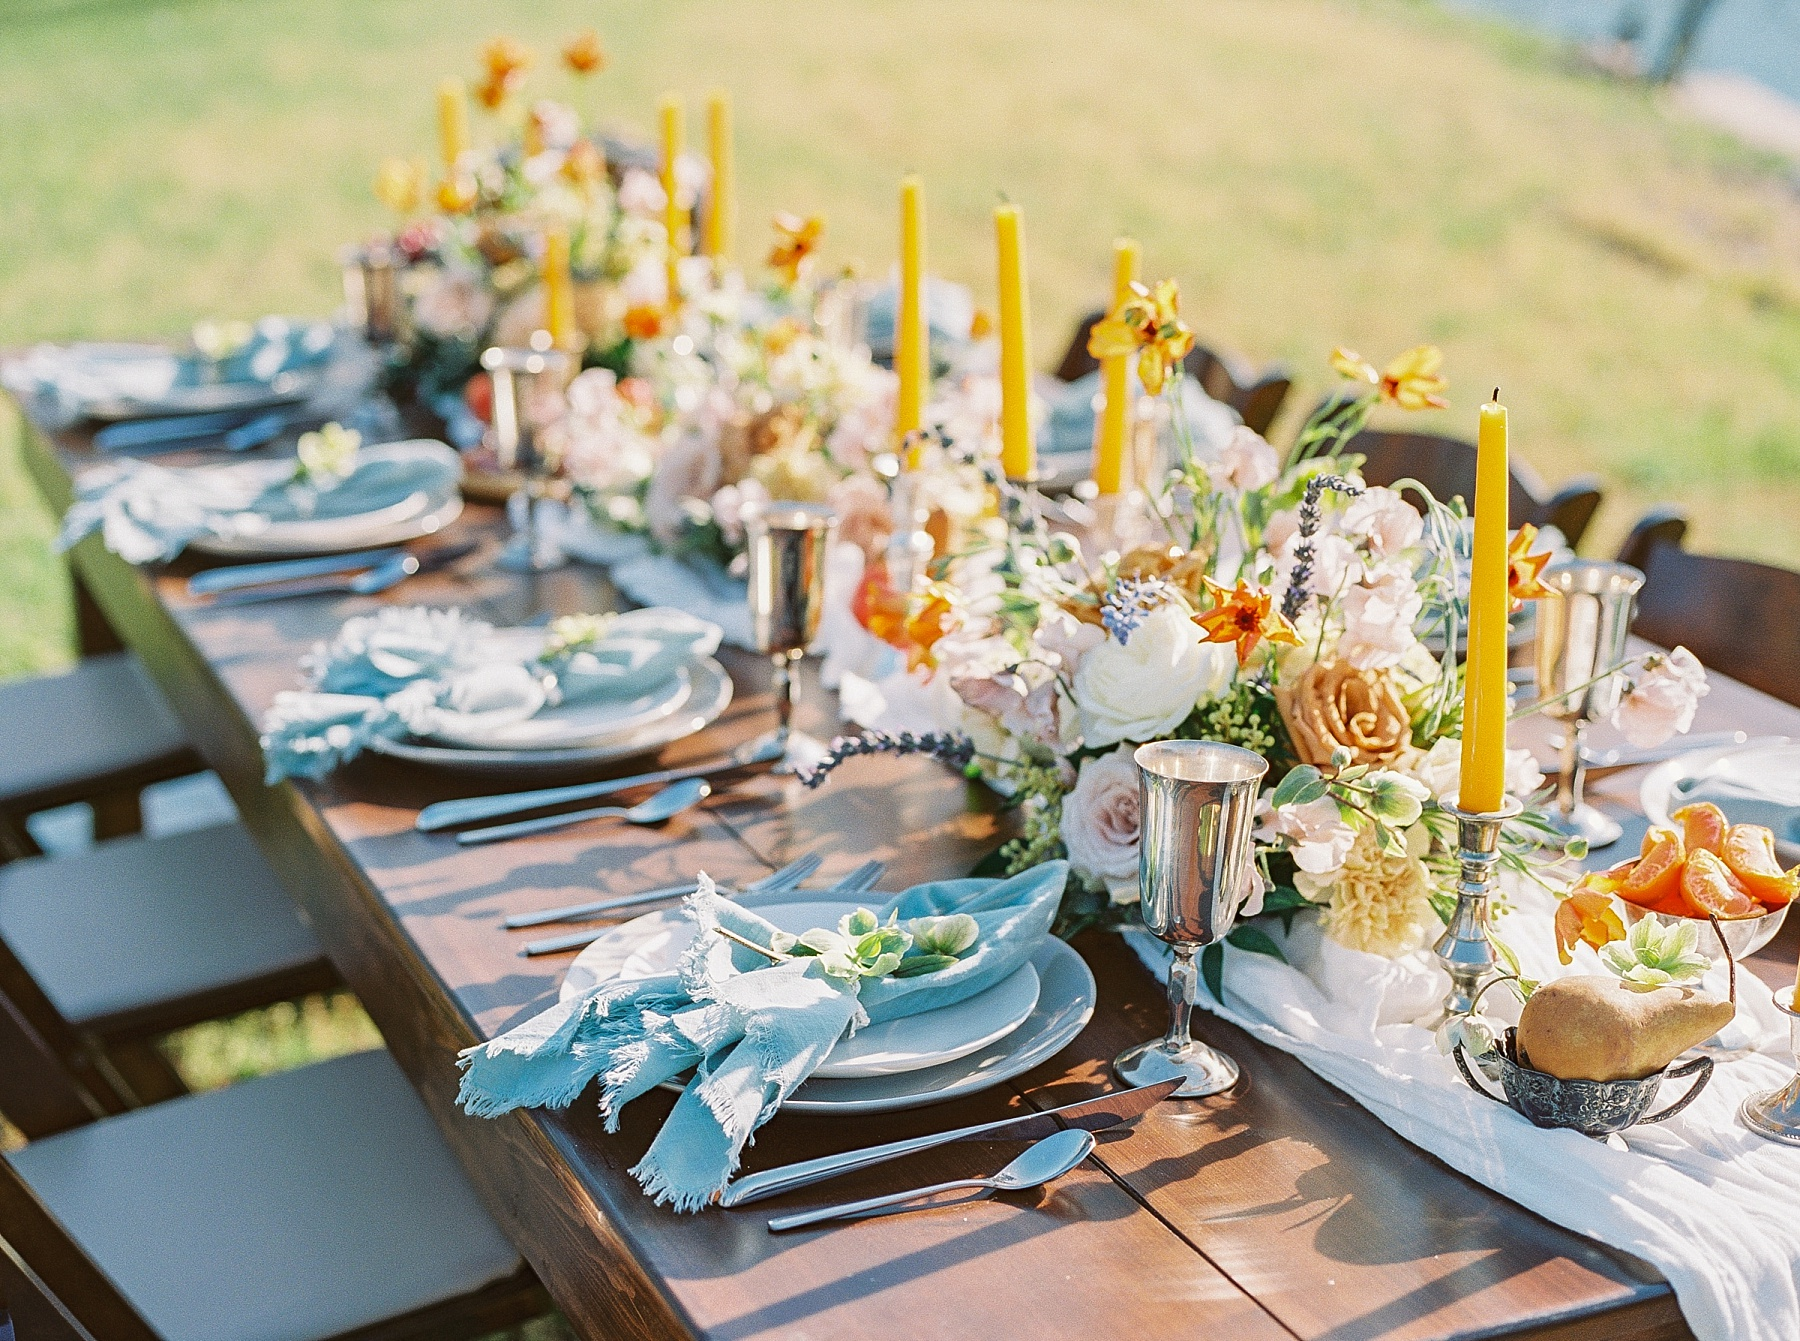 Intimate Spanish and French Inspired Destination Wedding with Lakeside Dinner Party at Dusk at Wildcliff by Kelsi Kliethermes Photography Best Missouri and Maui Wedding Photographer_0005.jpg